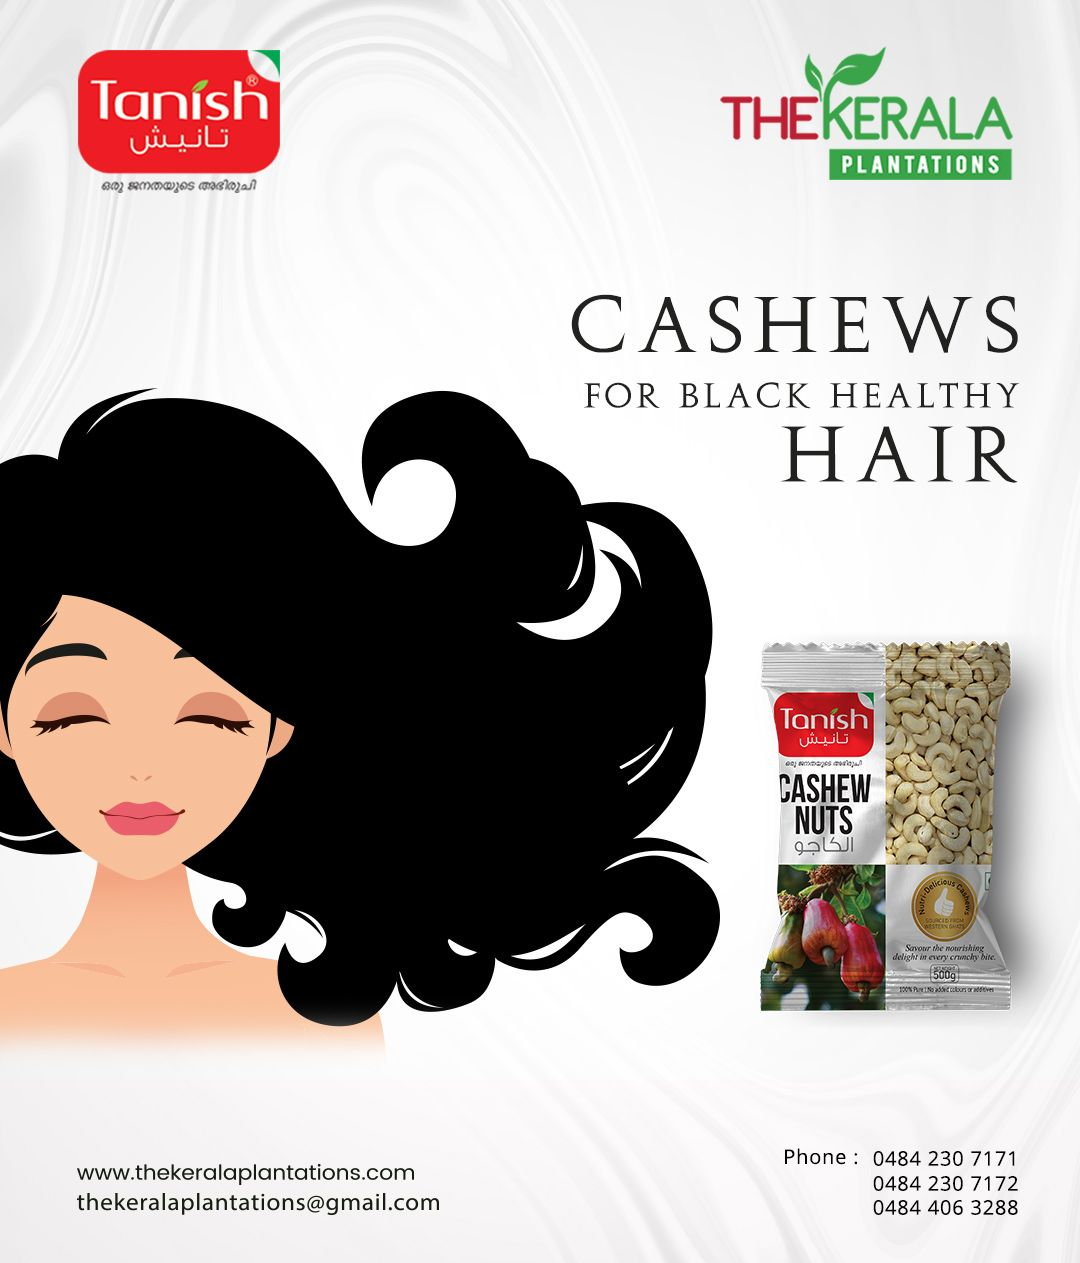 Eating Cashew can make your hair black and healthy. Tanish